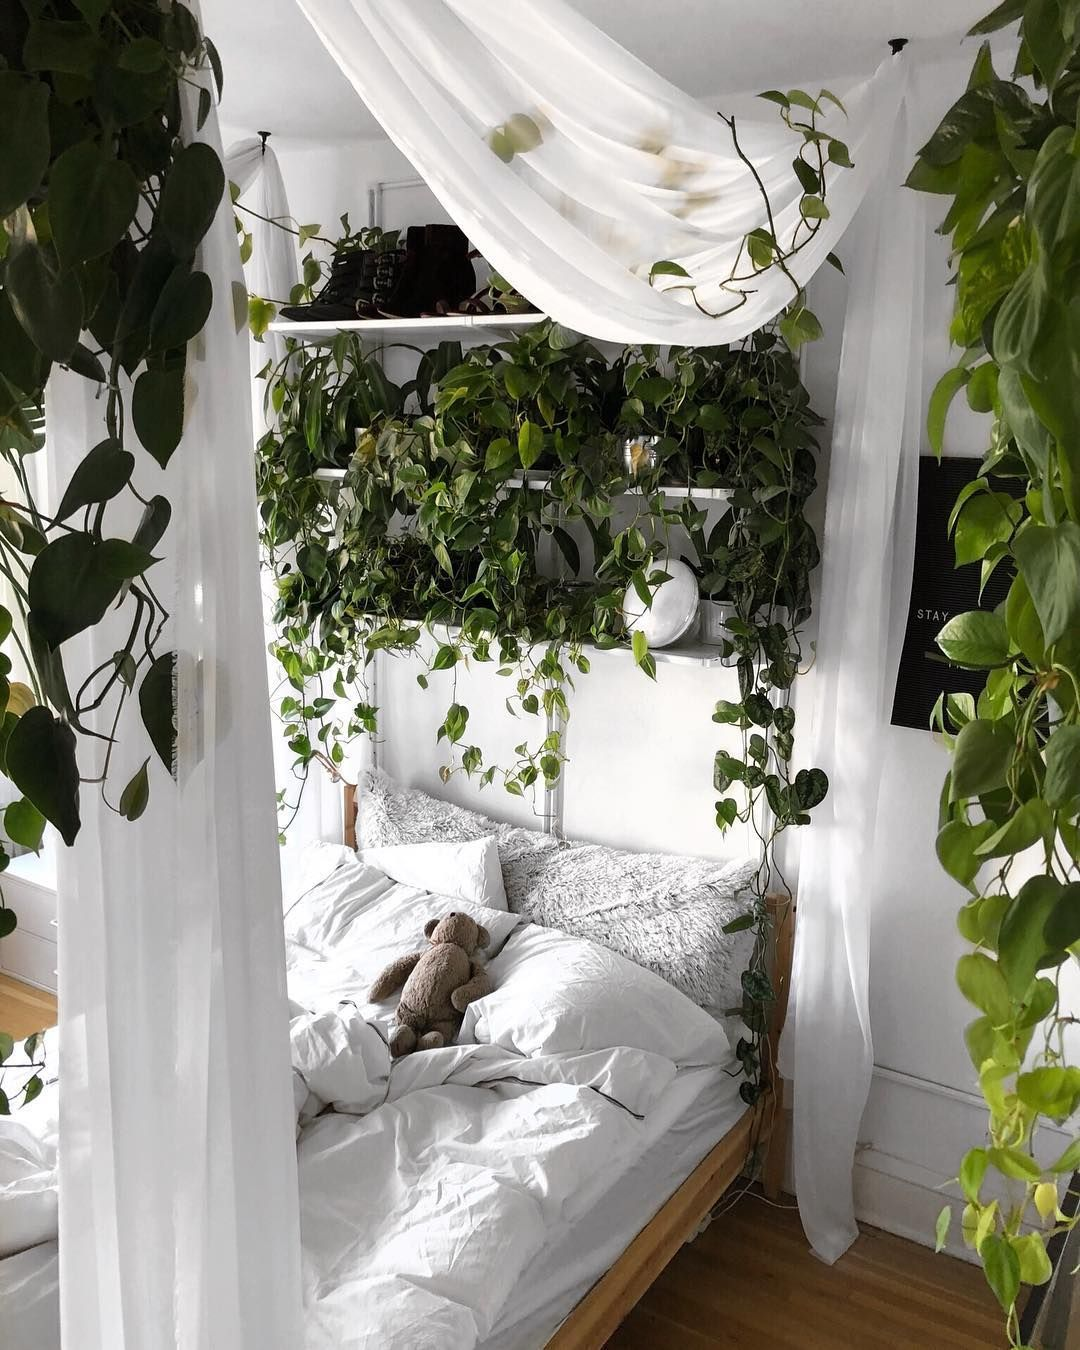 Pin on Cute Bedroom Decorating Ideas